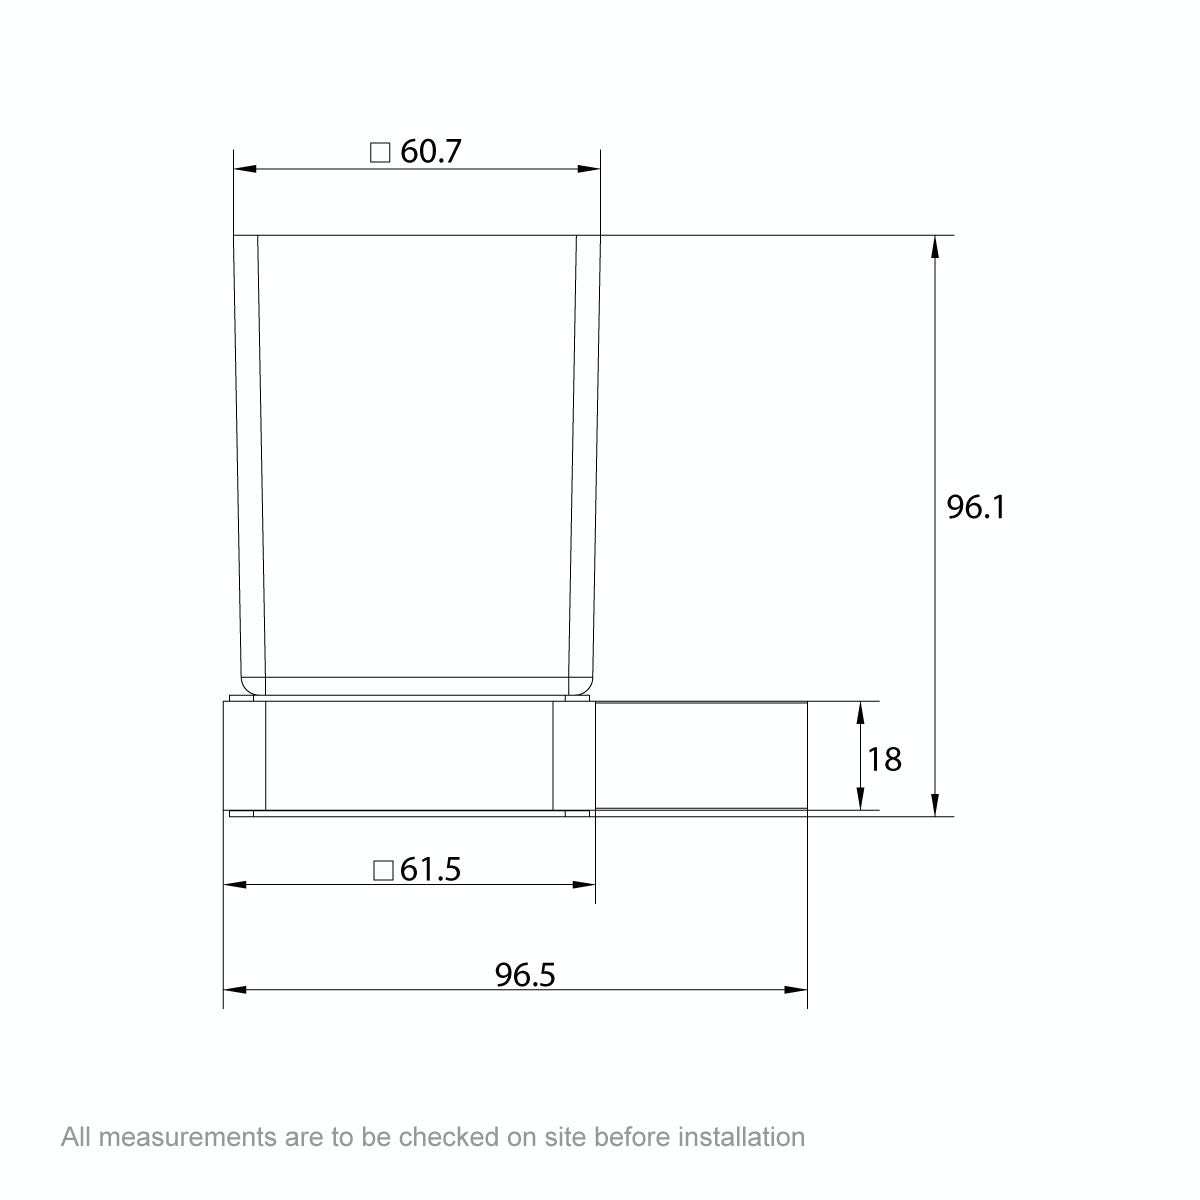 Dimensions for Mode Spencer brushed nickel tumbler and holder